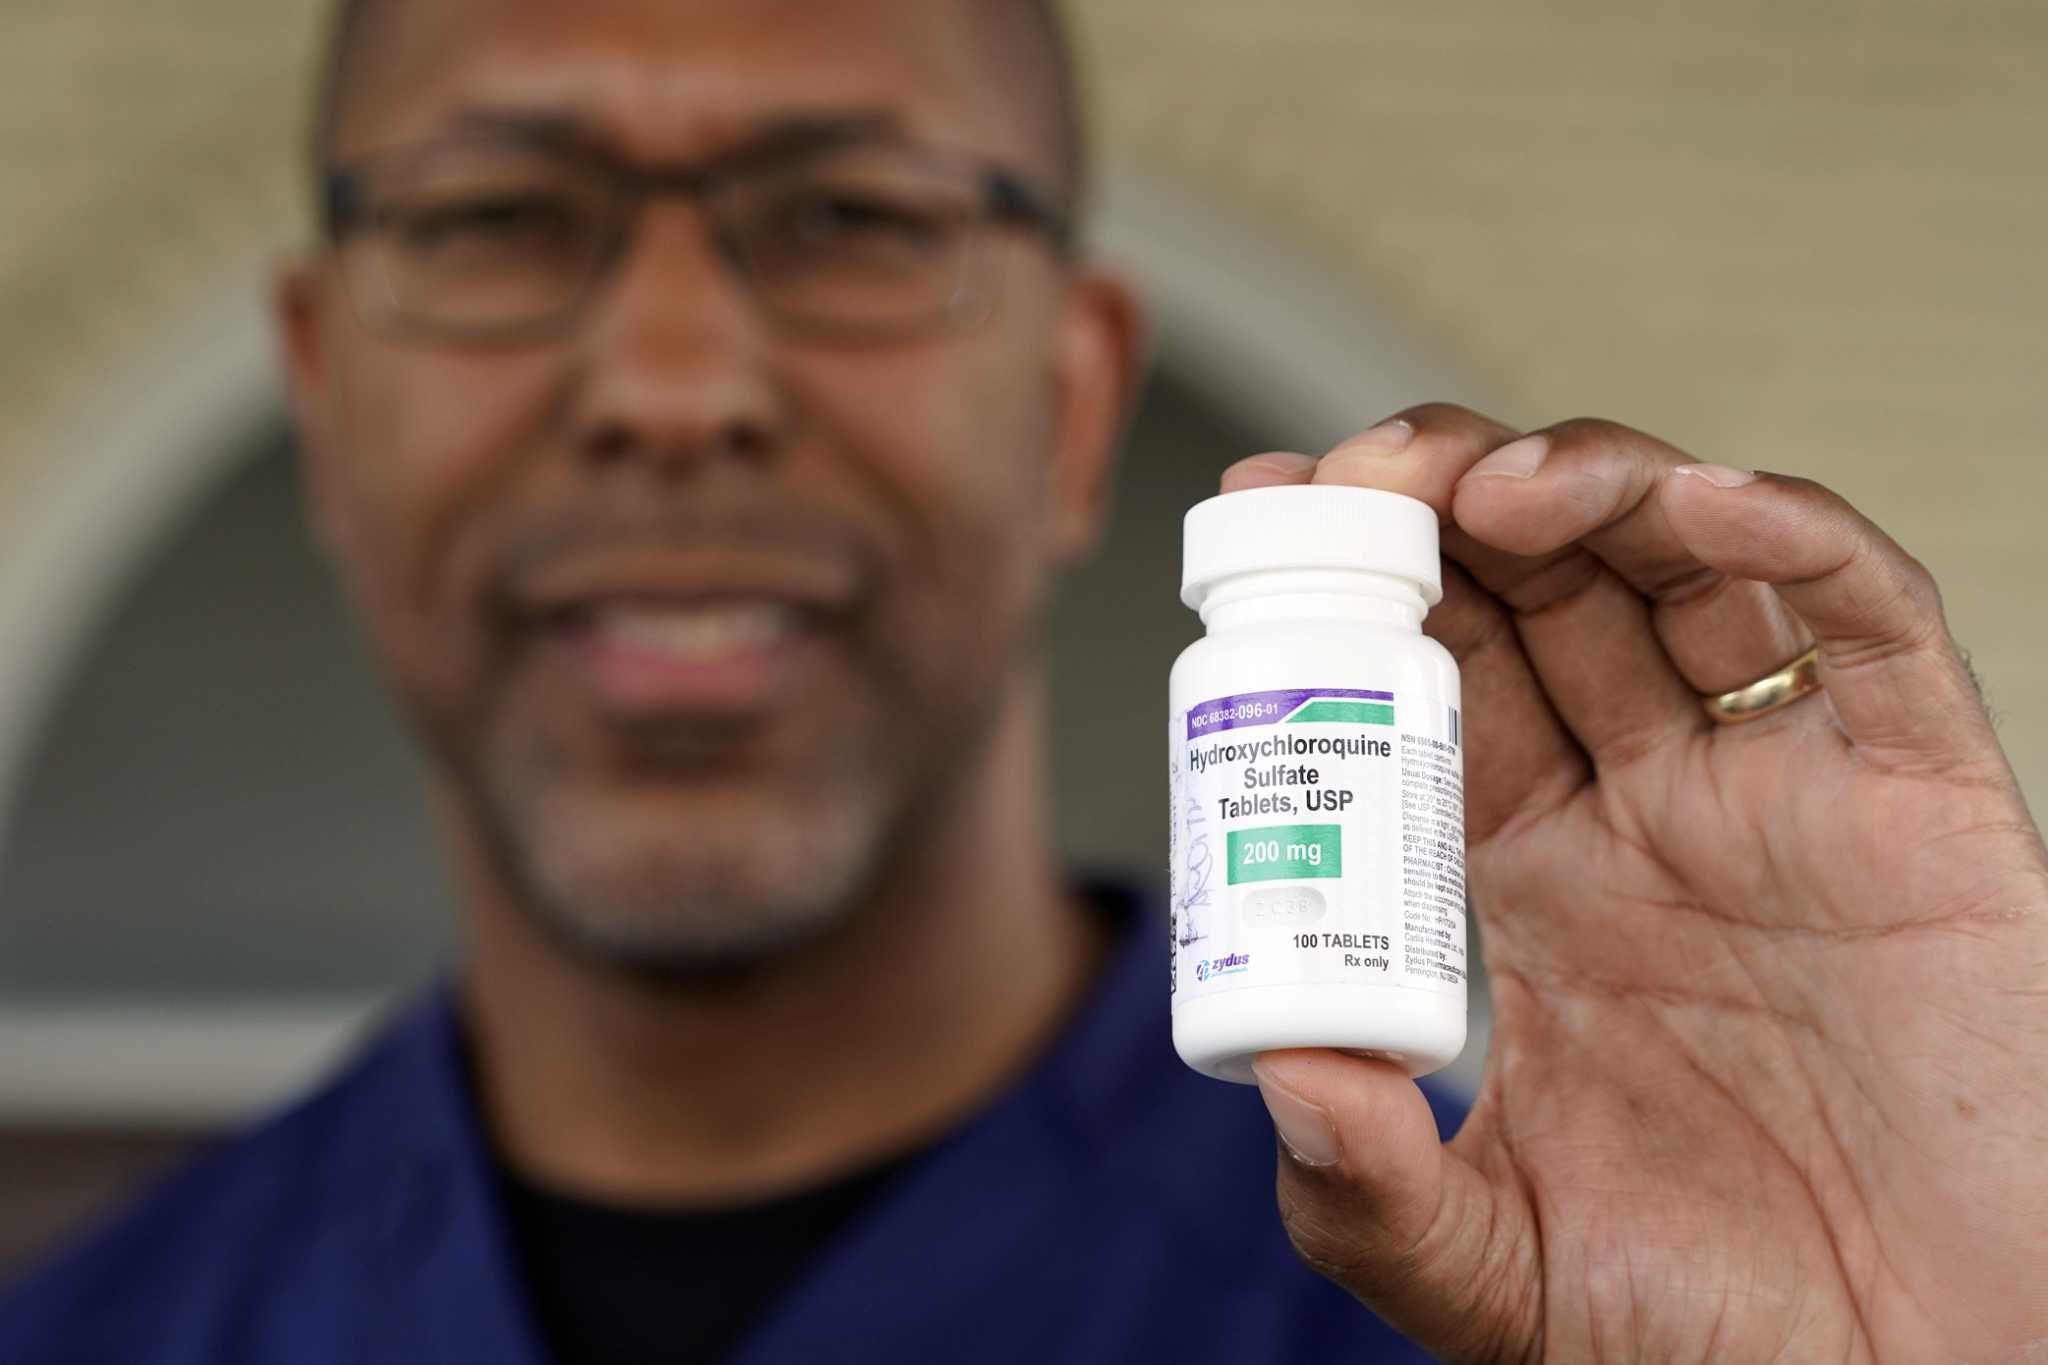 Use of Unproven COVID-19 Therapies by African American Patients Poses Risks